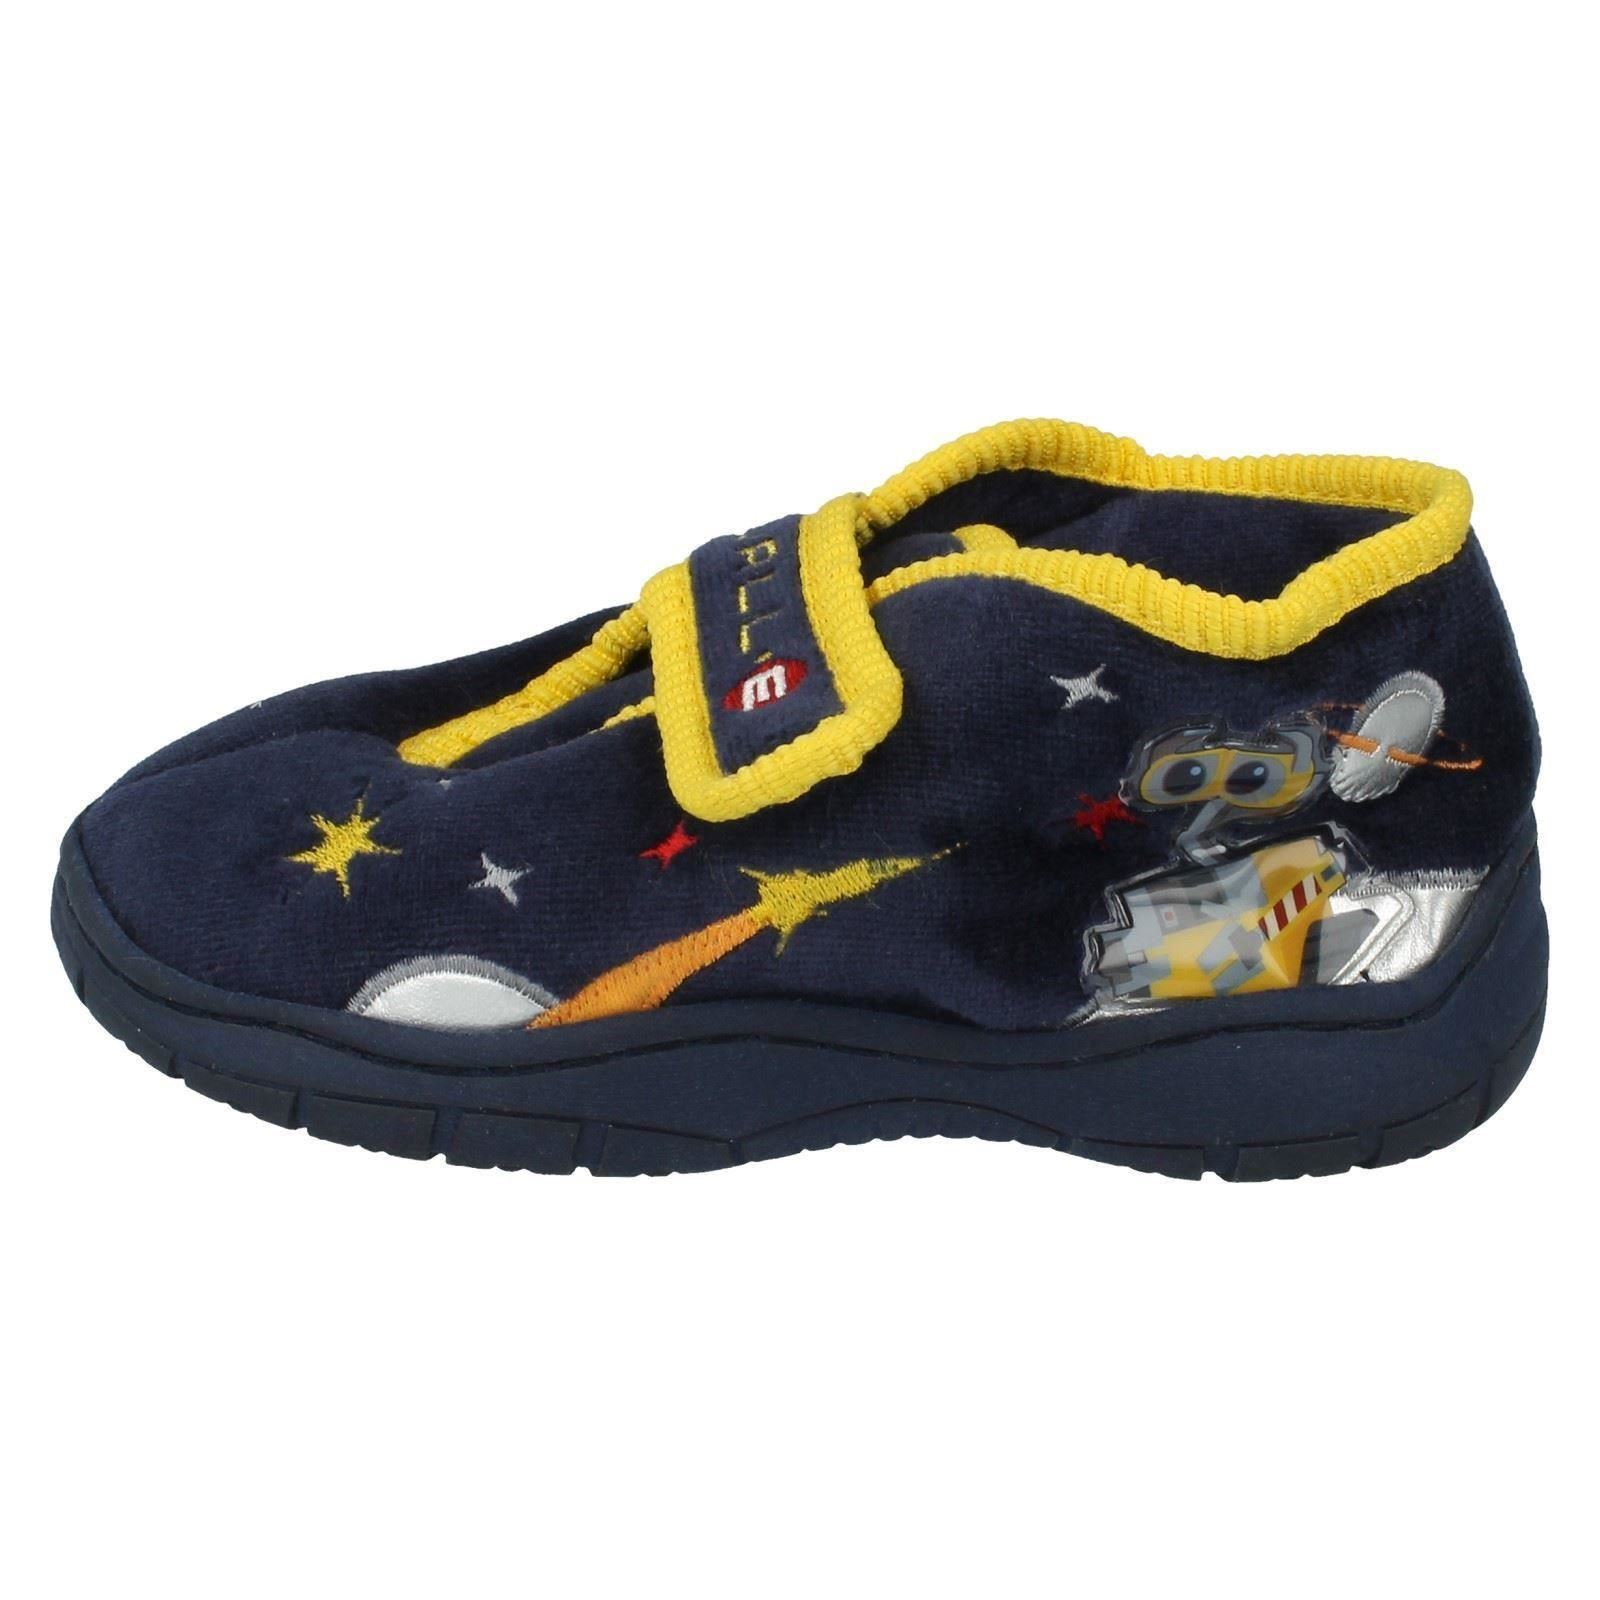 Boys Disney Slippers Label Pixar Walle